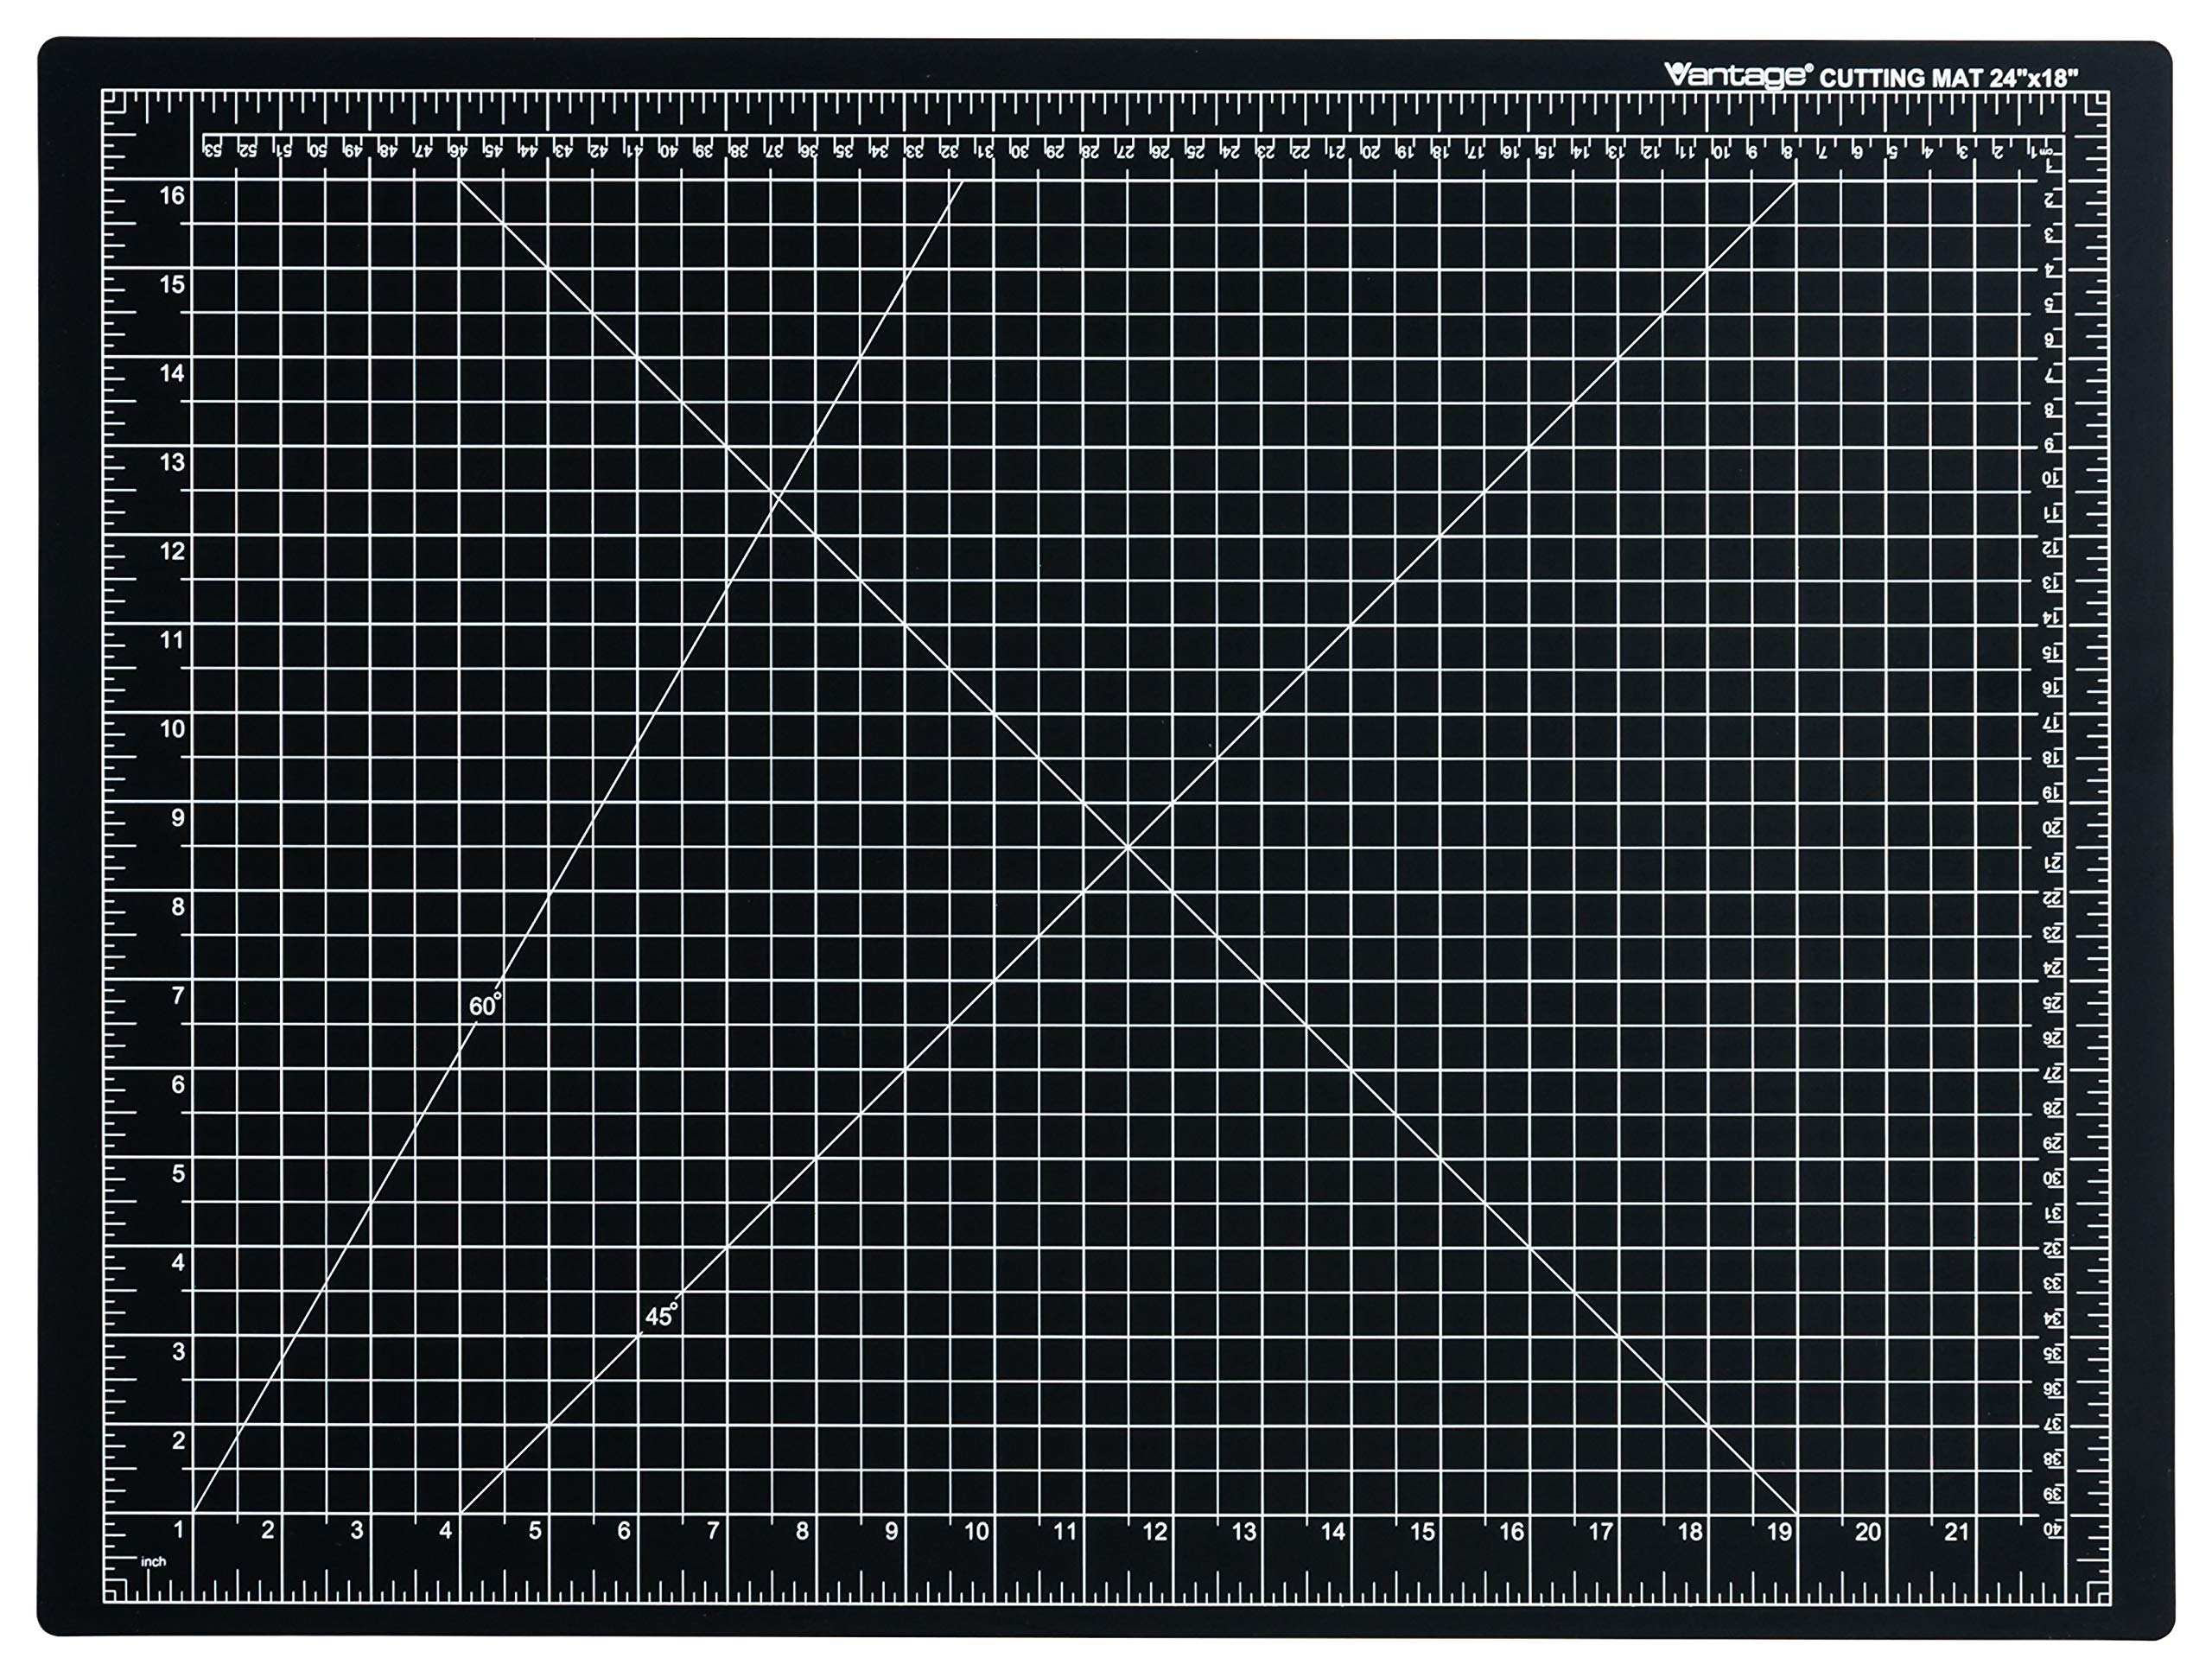 Dahle Vantage 10672 Self-Healing 5-Layer Cutting Mat Perfect for Crafts and Sewing 24'' x 18'' Black Mat by Dahle